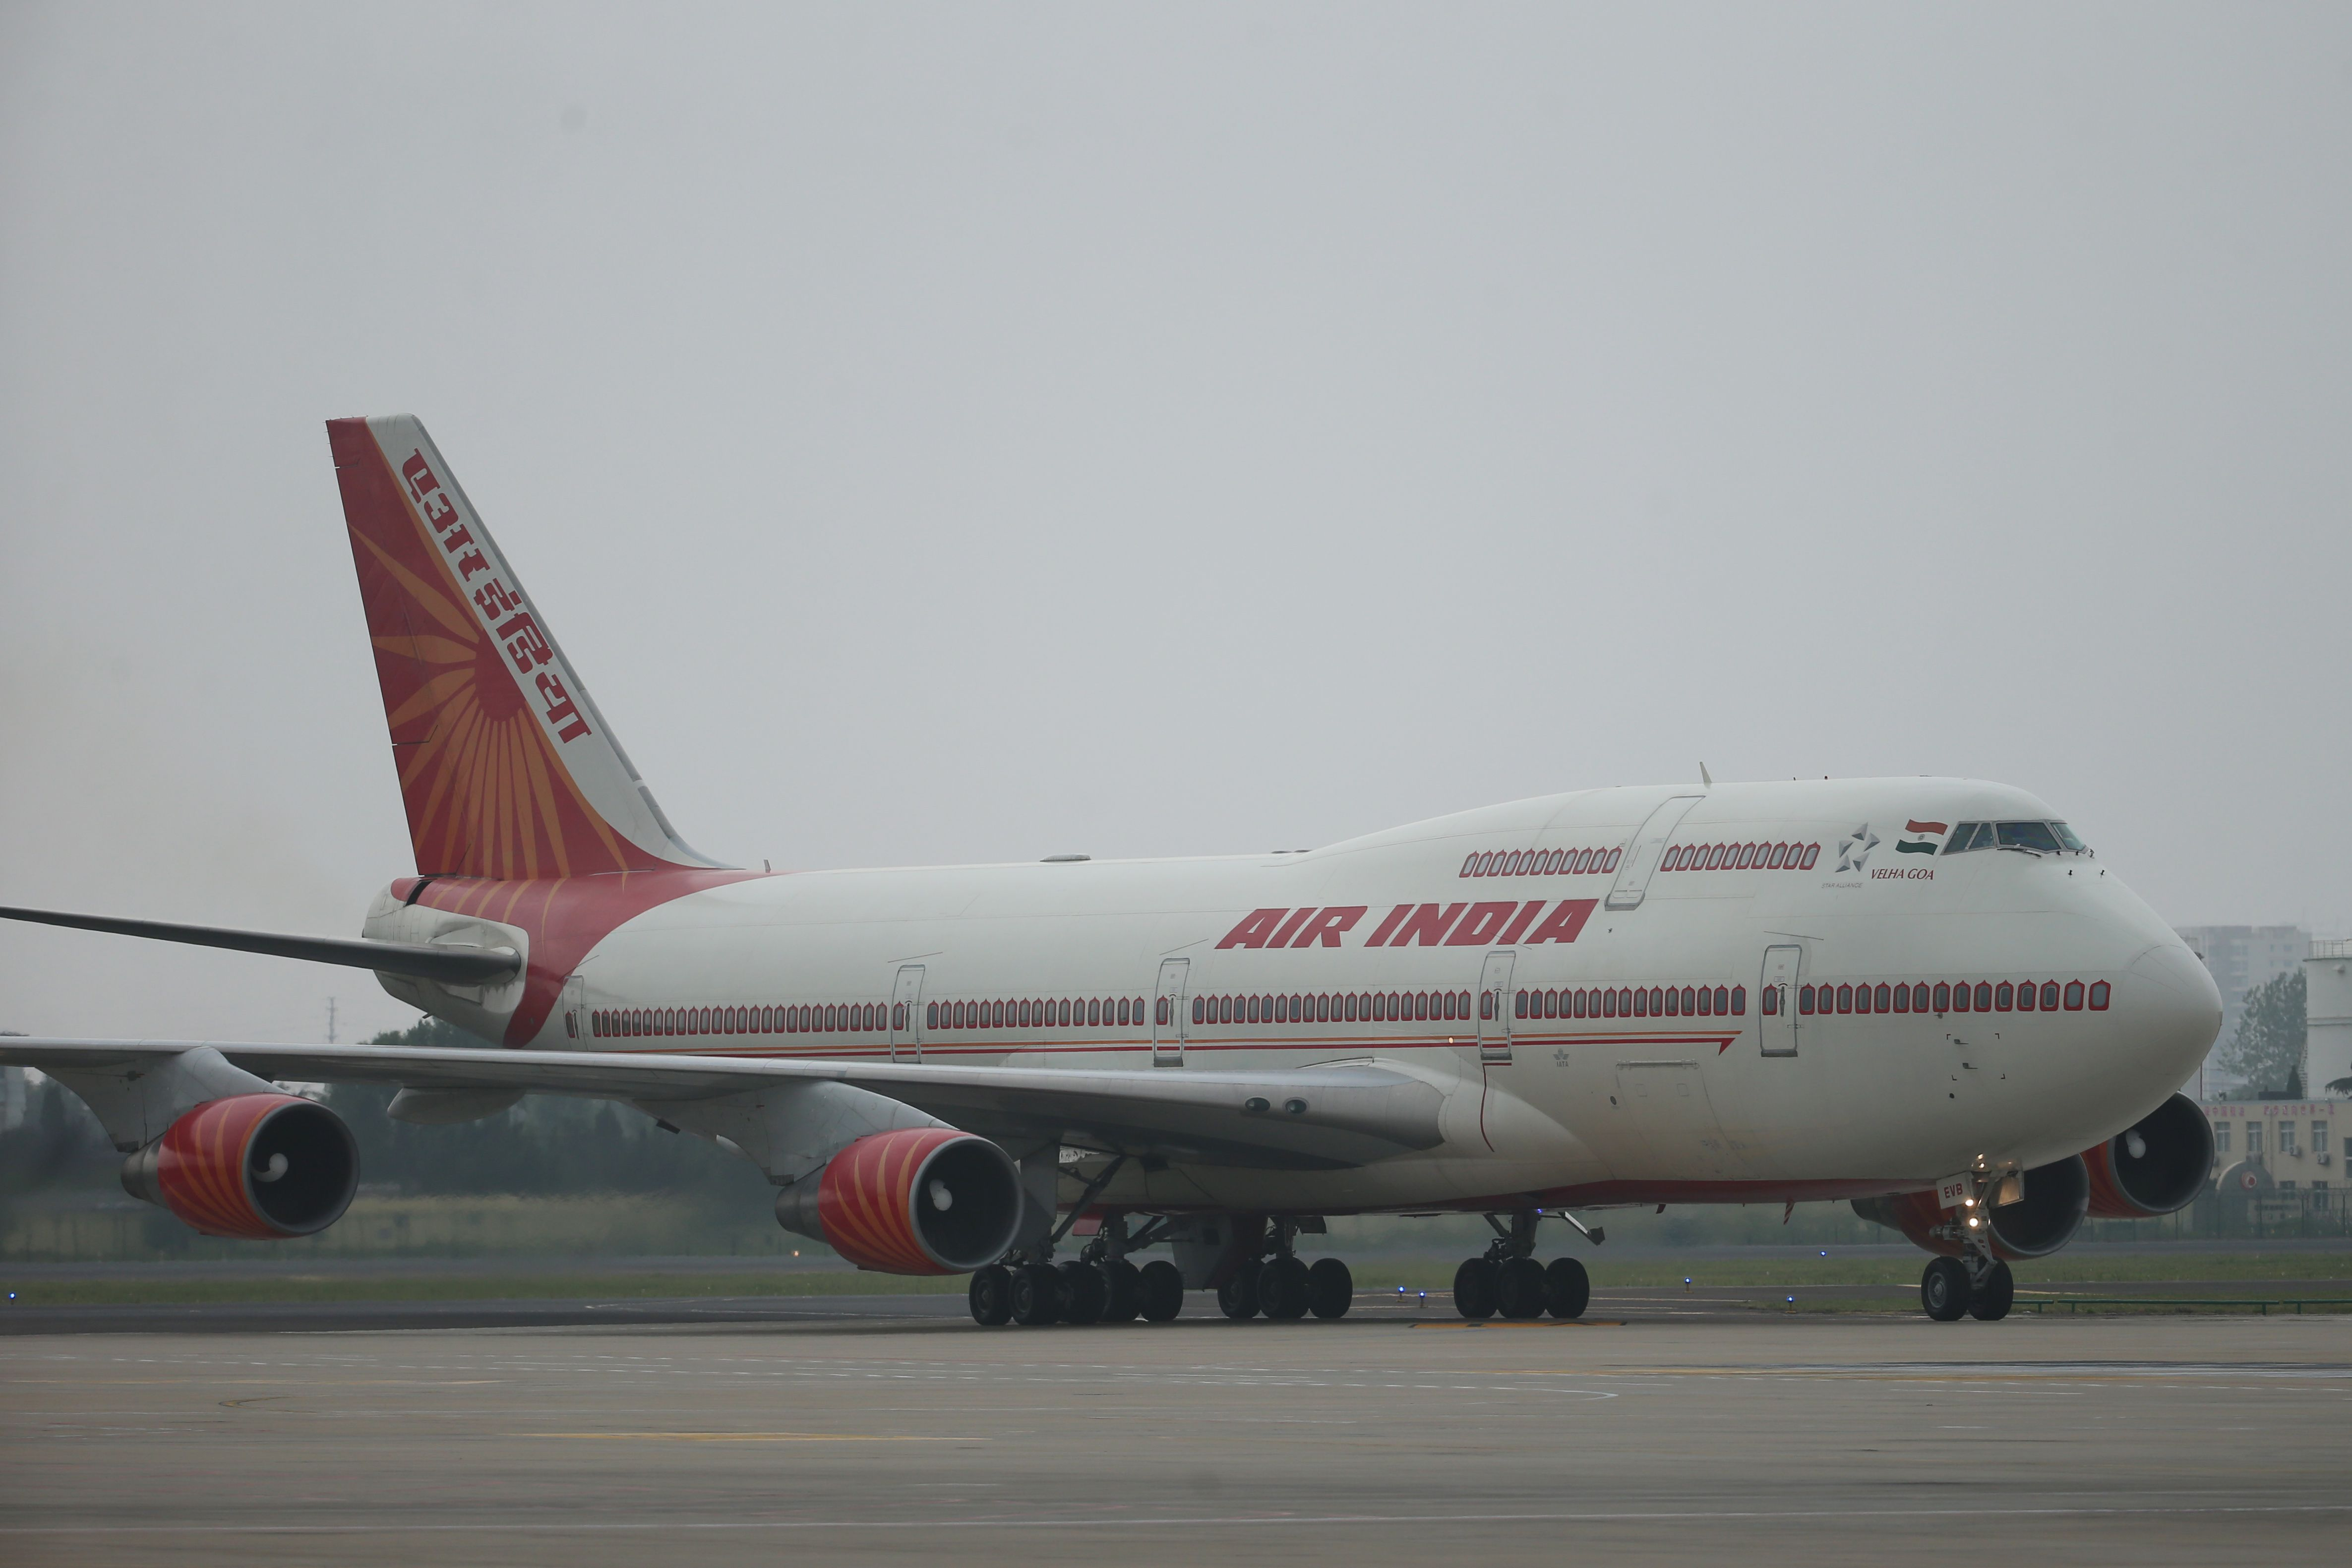 Crew Aboard India's National Airline Have Been Ordered to 'Hail the Motherland'